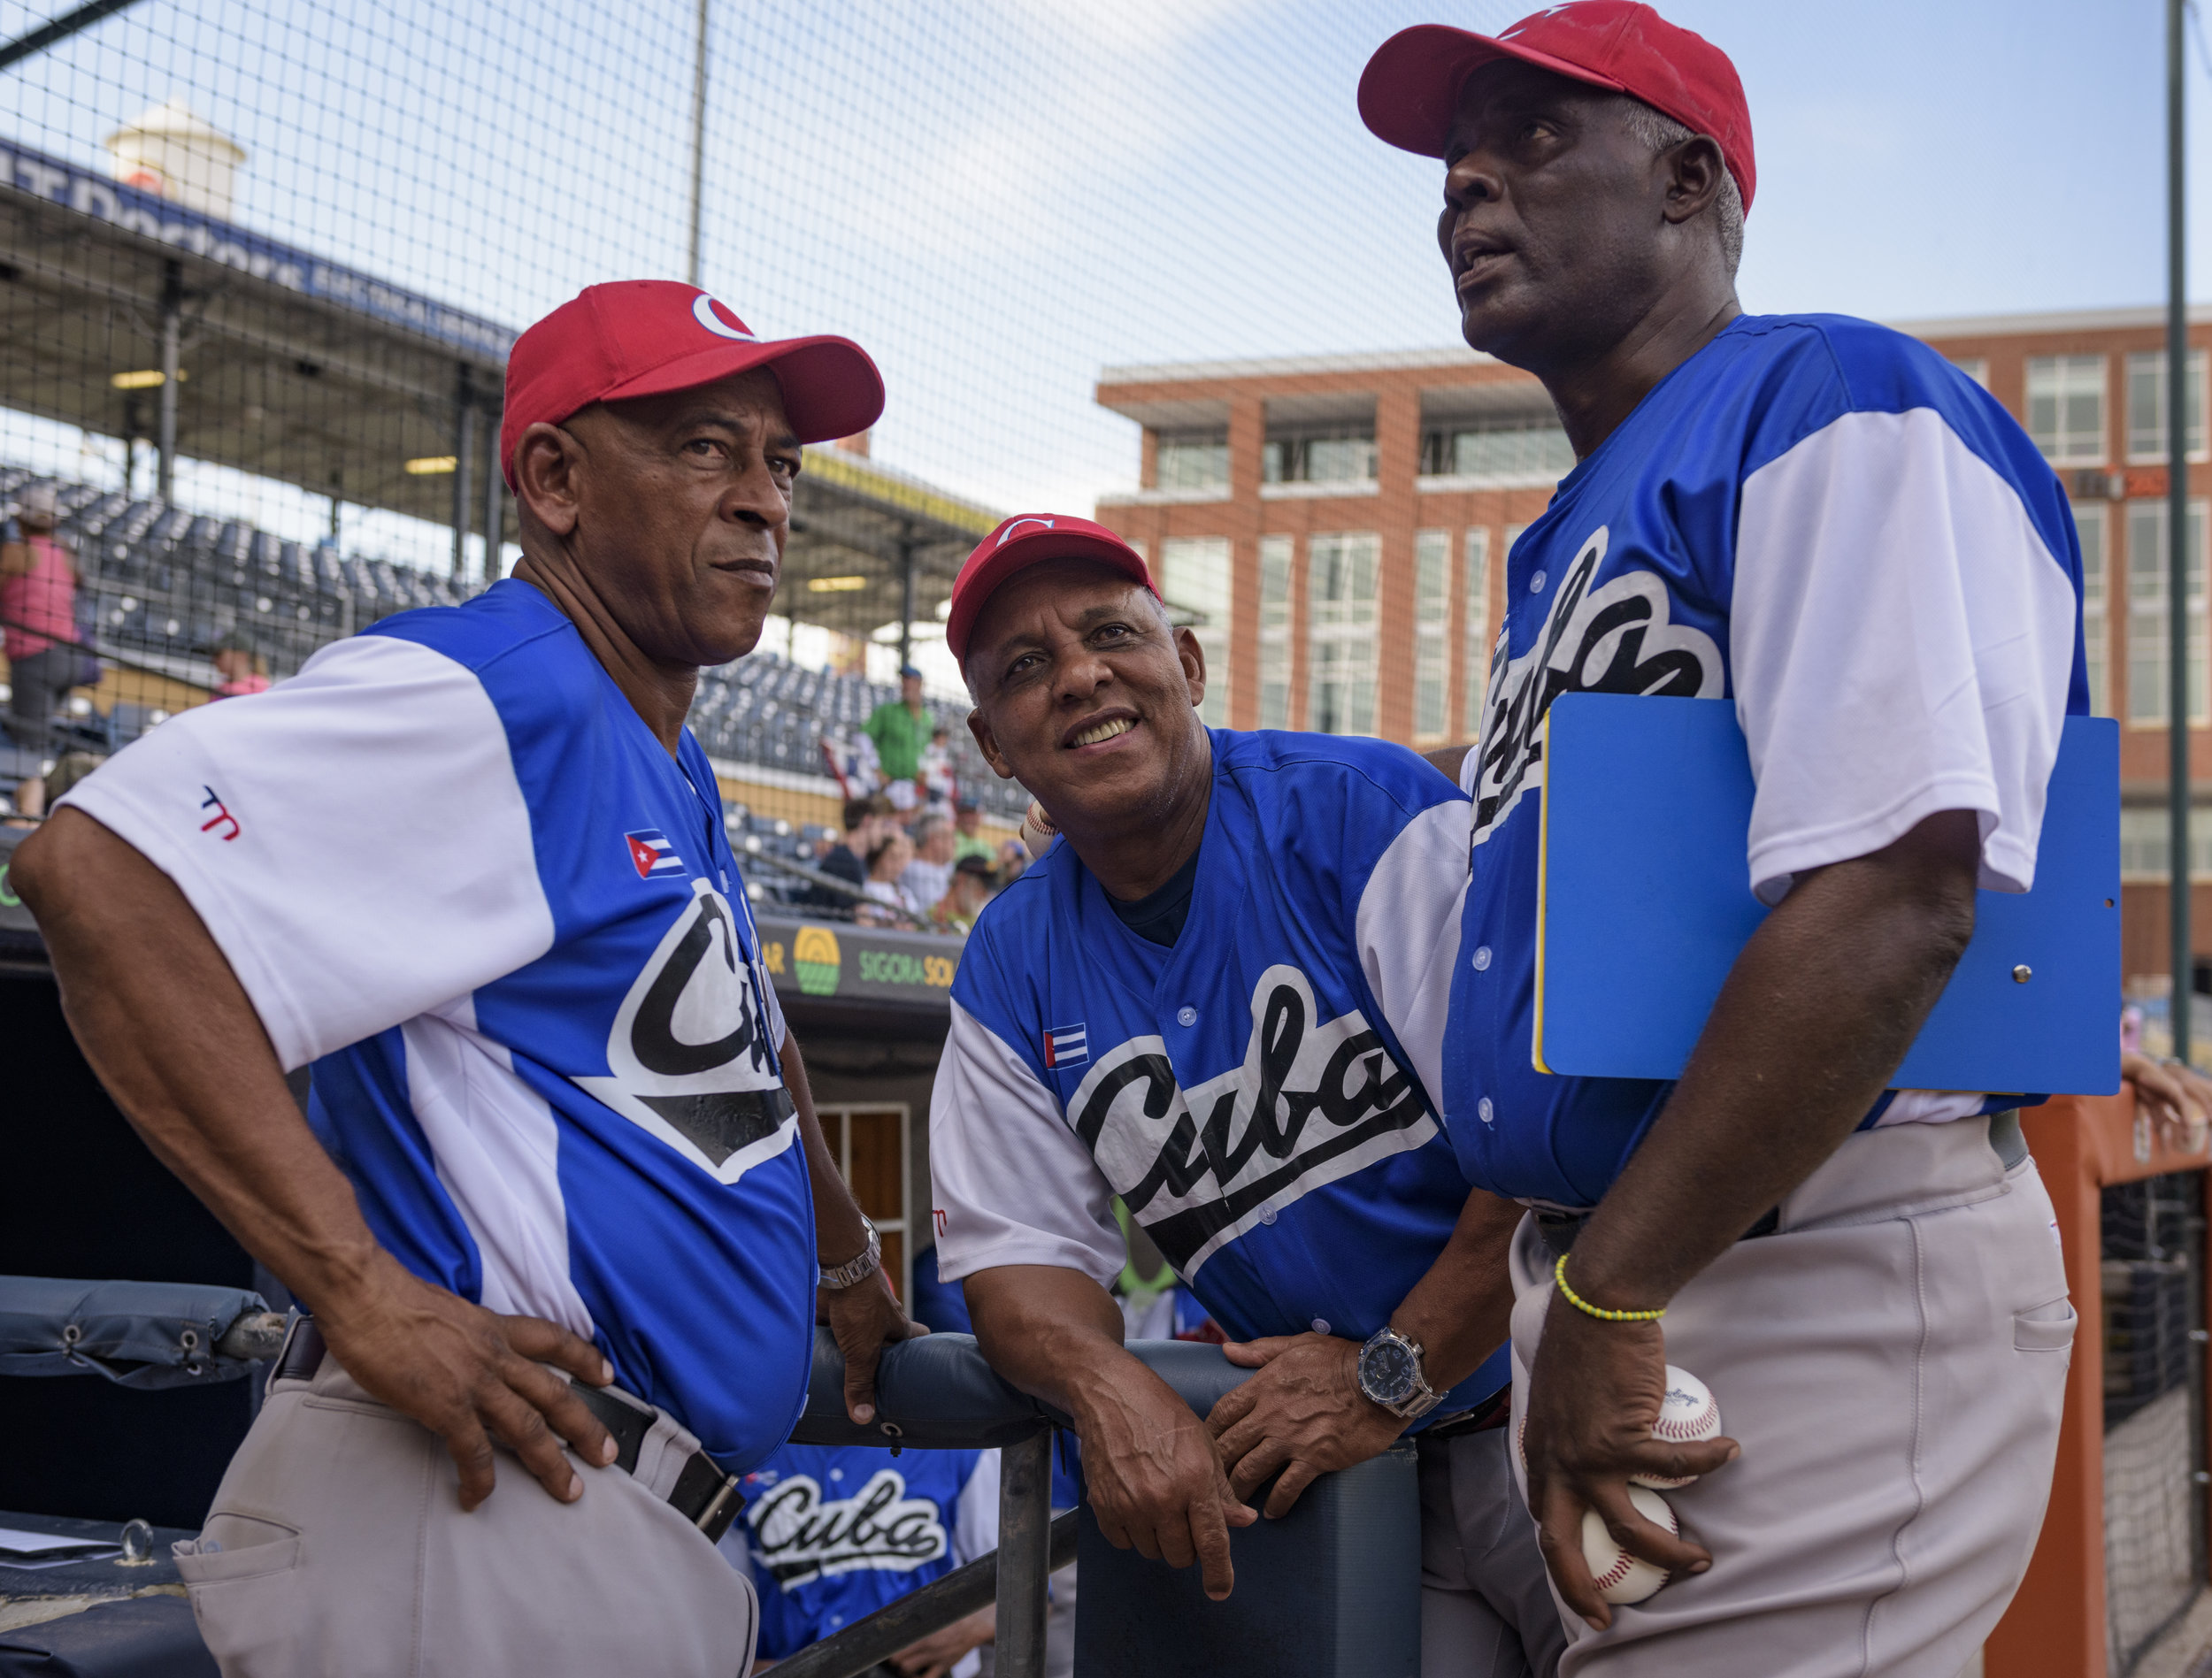 Cuba national team manager Rey Anglada (center) talks with coaches Miguel Rojas Rodriguez (left) and Javier Galvez Cordova (right) before Cuba's game against the USA Baseball Collegiate National Team on July 6, 2019 at Durham Bulls Athletic Park in Durham, NC.